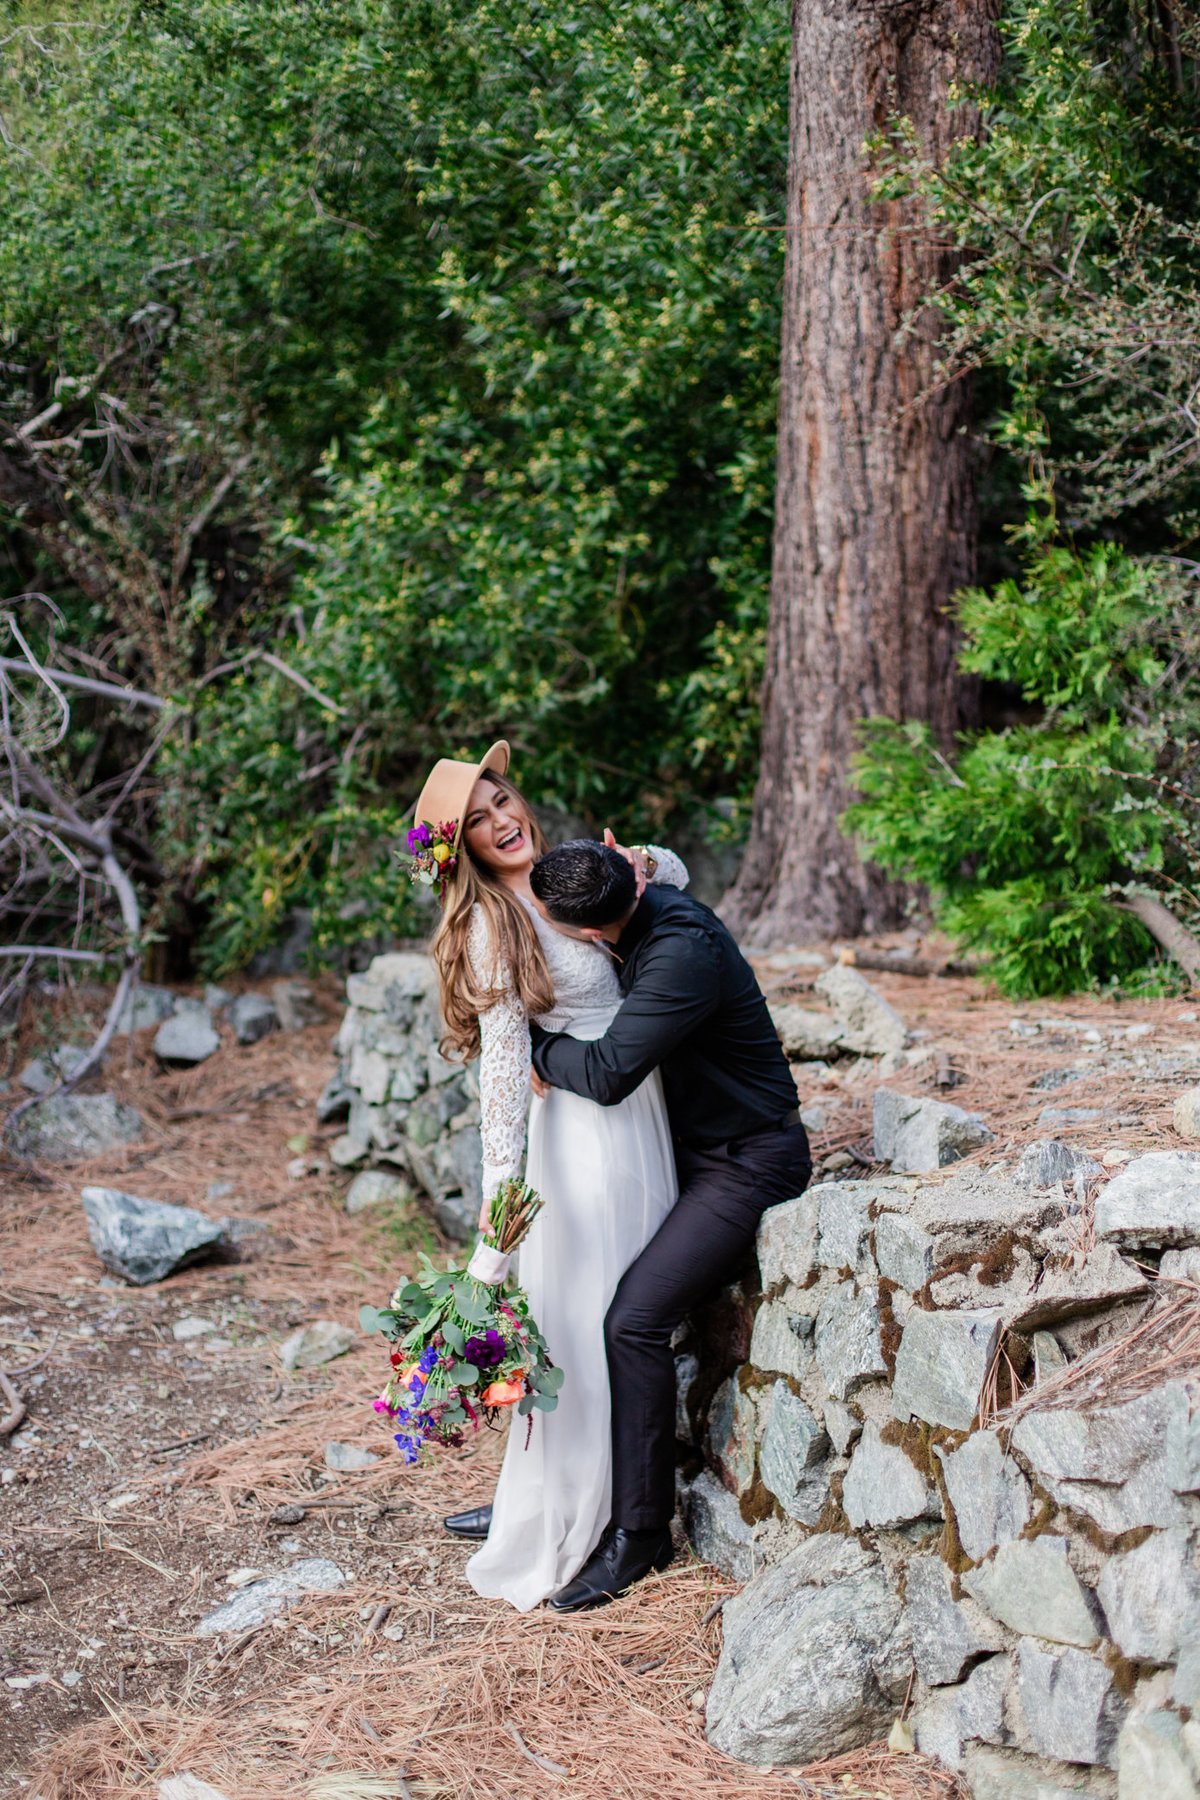 Mt. Baldy Elopement, Wildflower Bouquet, Mt. Baldy Styled Shoot, Mt. Baldy Wedding, Forest Elopement, Forest Wedding, Boho Wedding, Boho Elopement, Mt. Baldy Boho, Forest Boho, Woodland Boho S&W-18